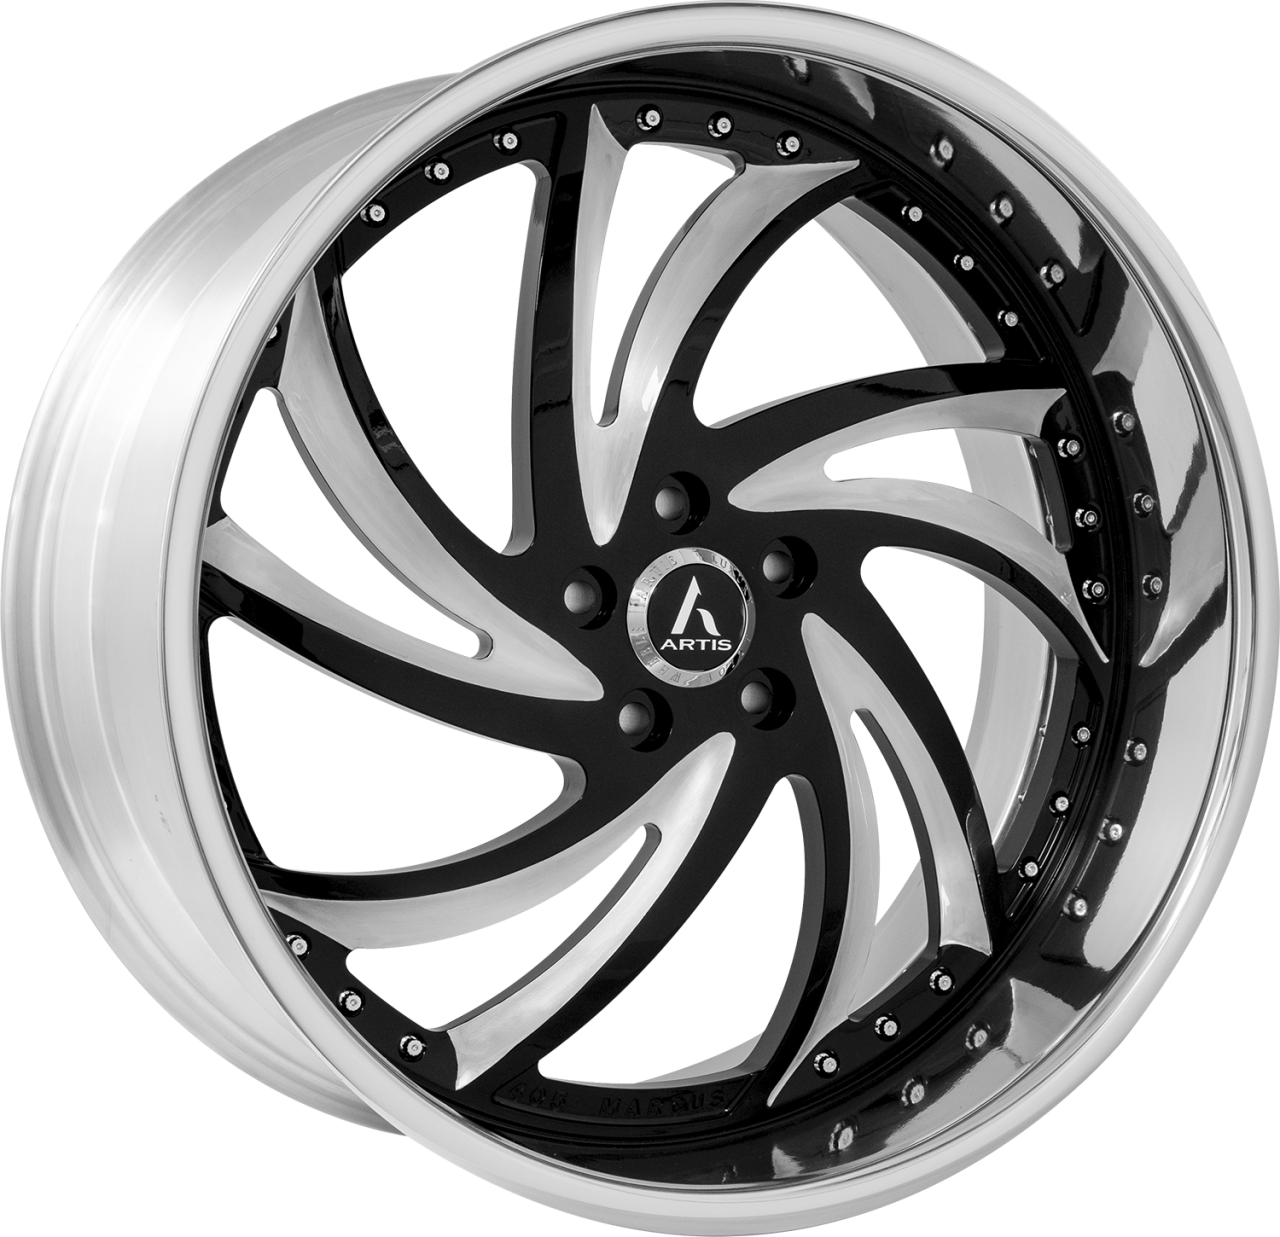 Artis Forged Twister-M wheel with 2 Tone Finish finish